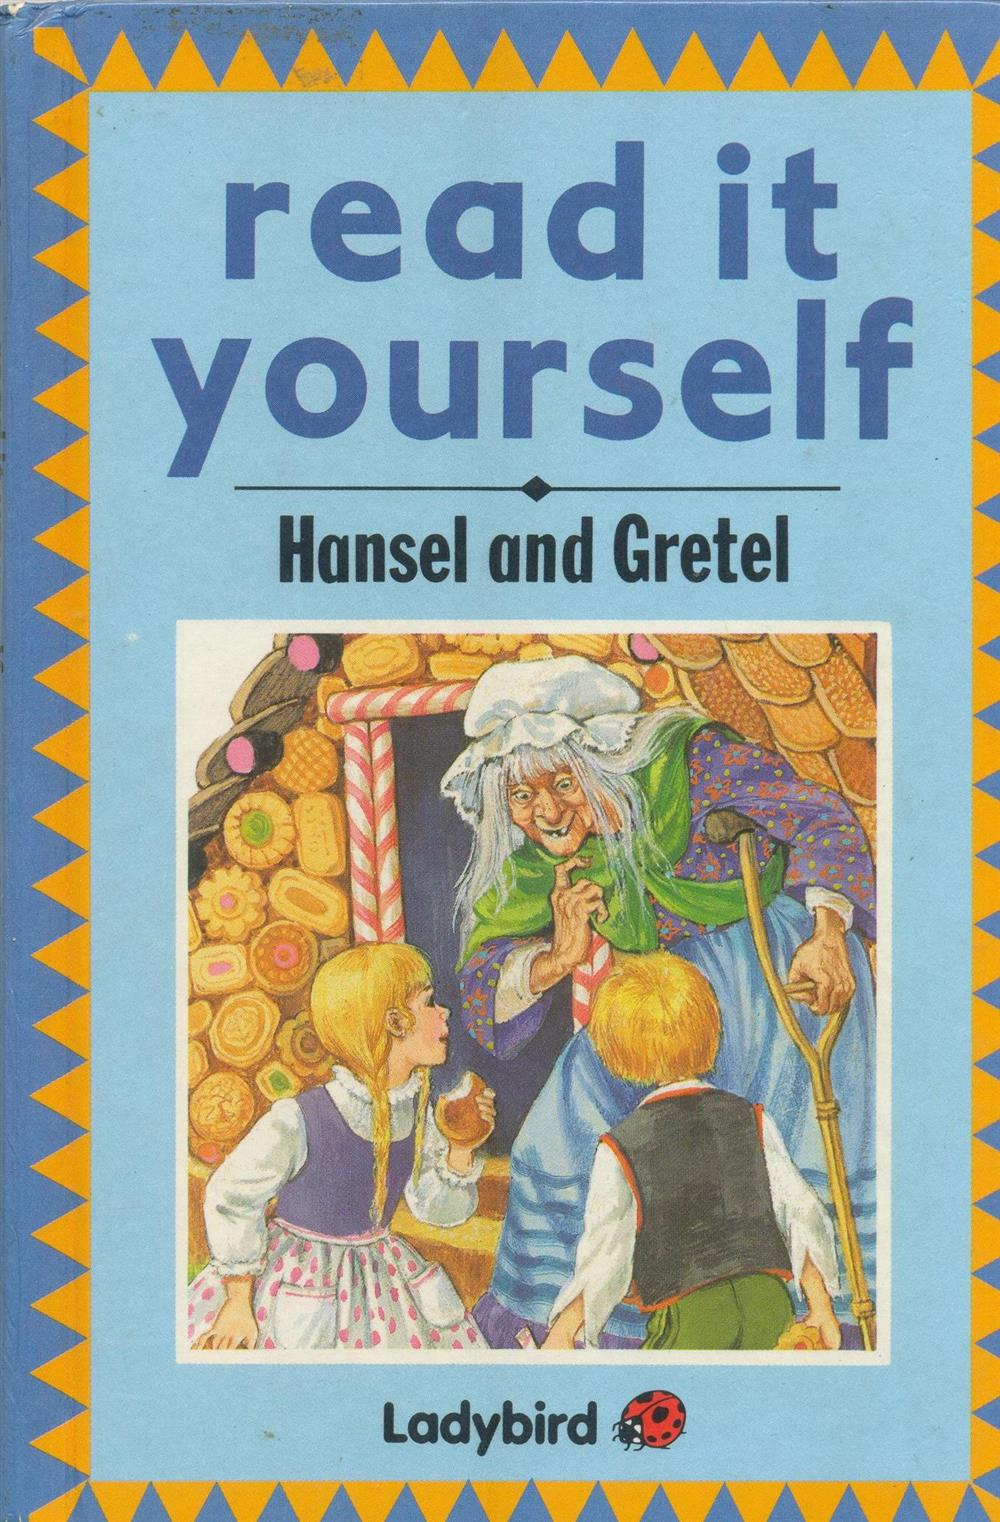 Hansel and Gretel 001.jpg